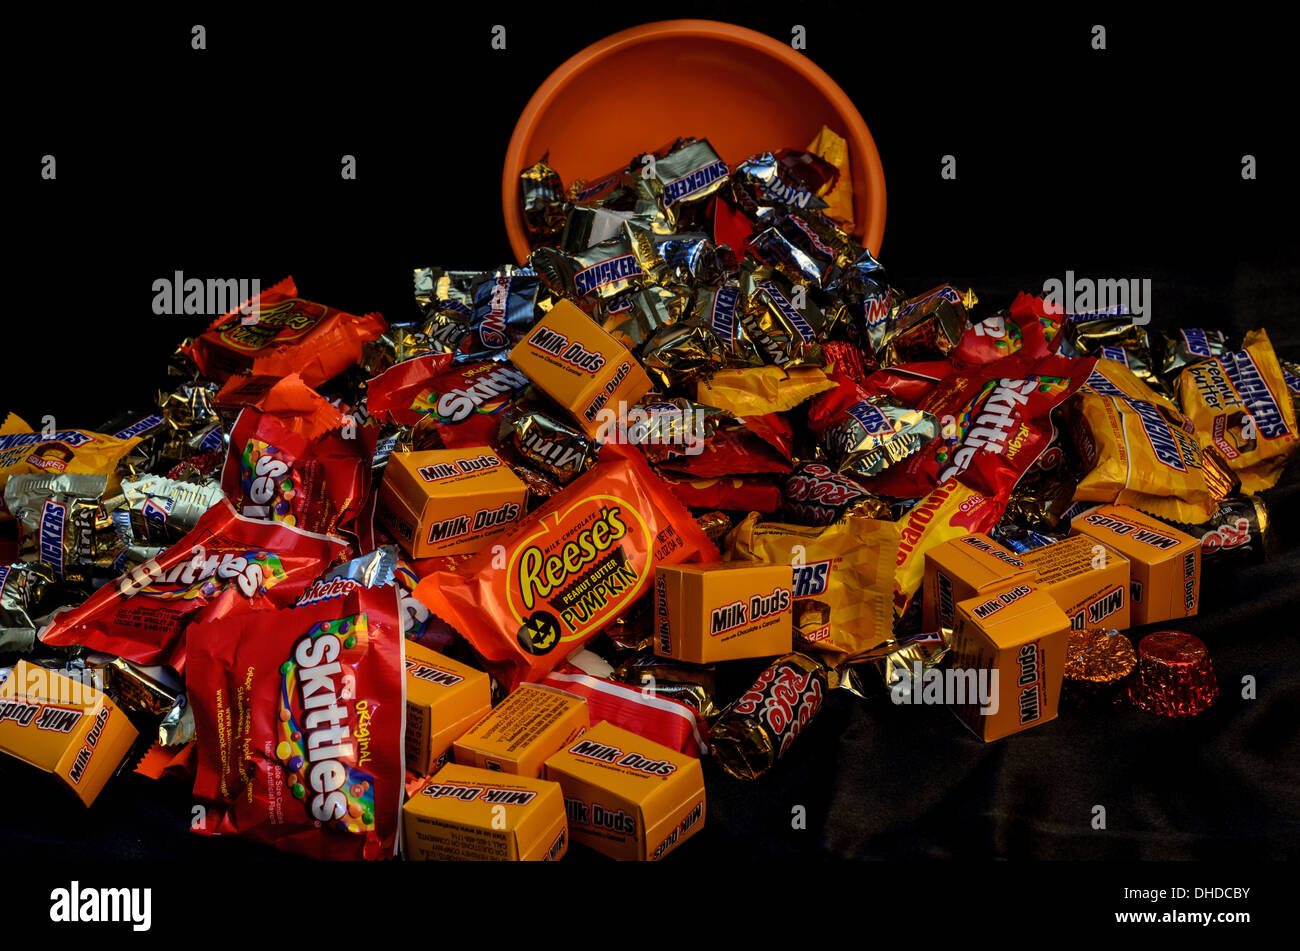 Halloween Candy Falling Out of Bowl - Stock Image